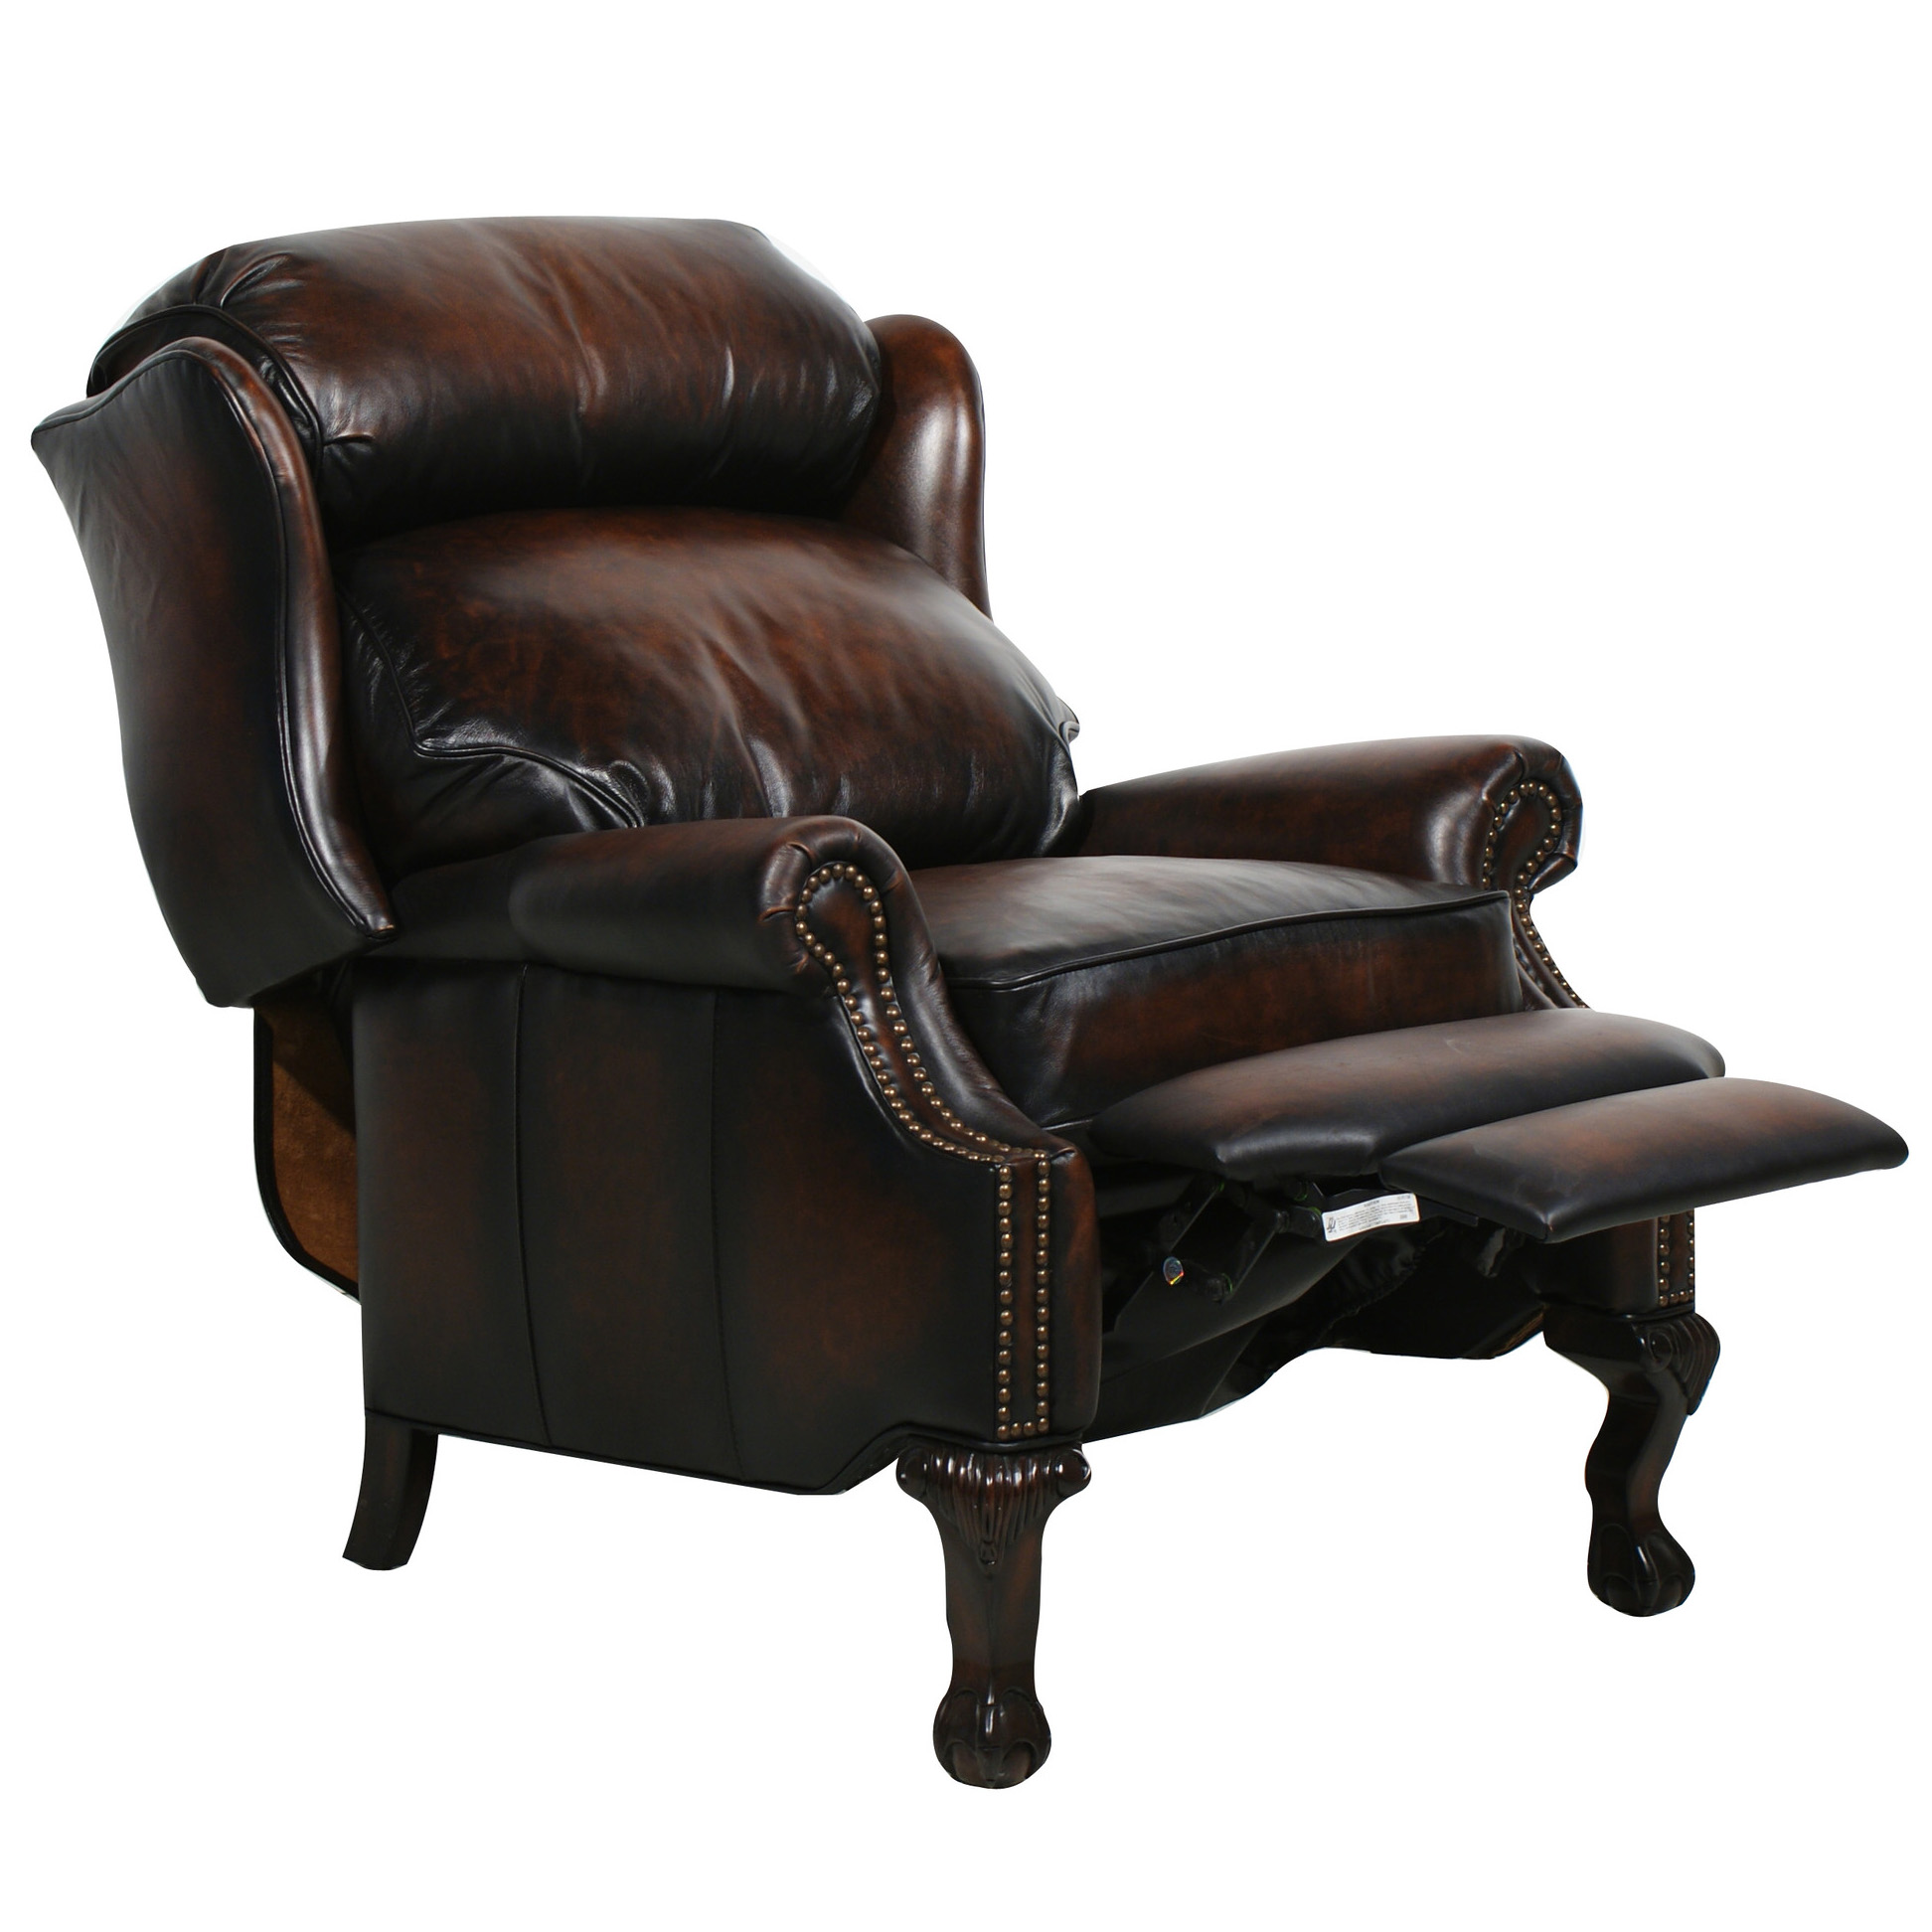 Barcalounger Danbury II Recliner Chair